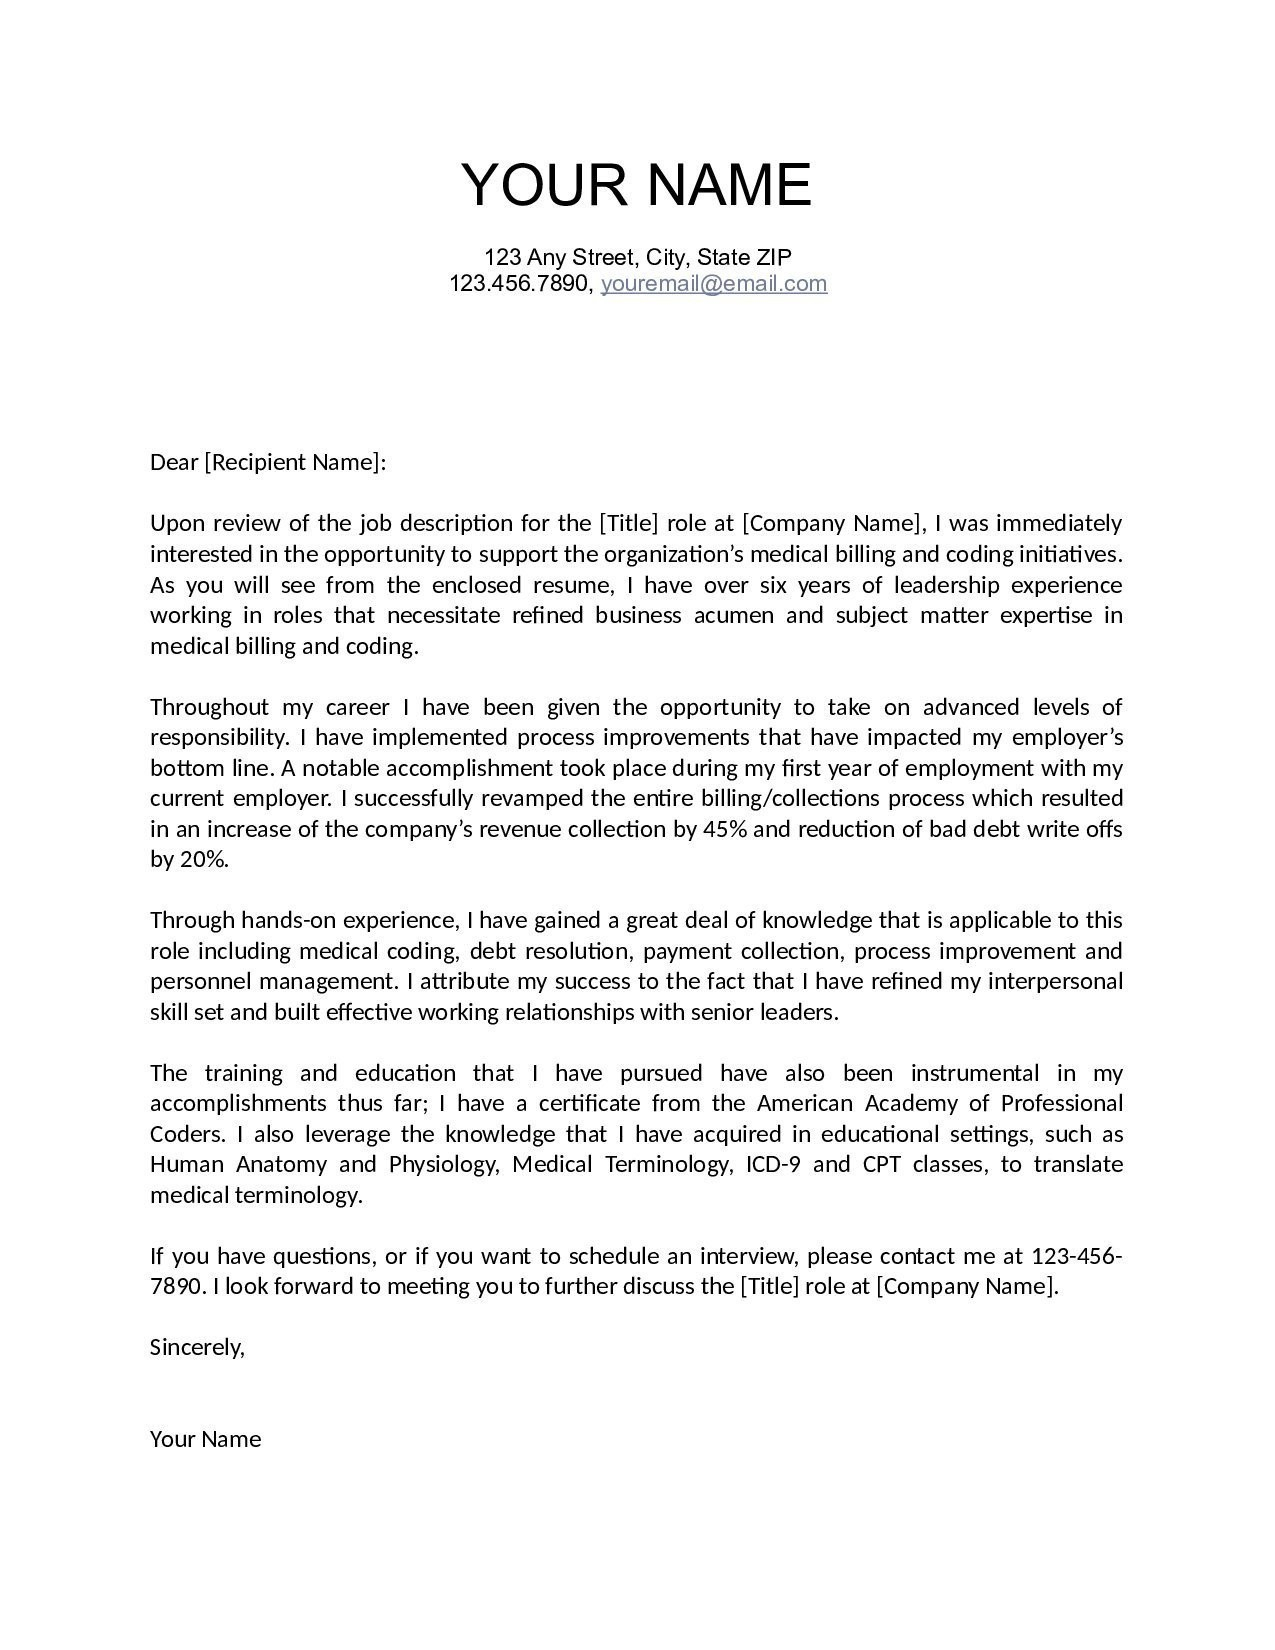 letter of interest for job template example-Letter Interest Email Template Letter Interest for Job New Cover Letter Examples for Internship 6-o